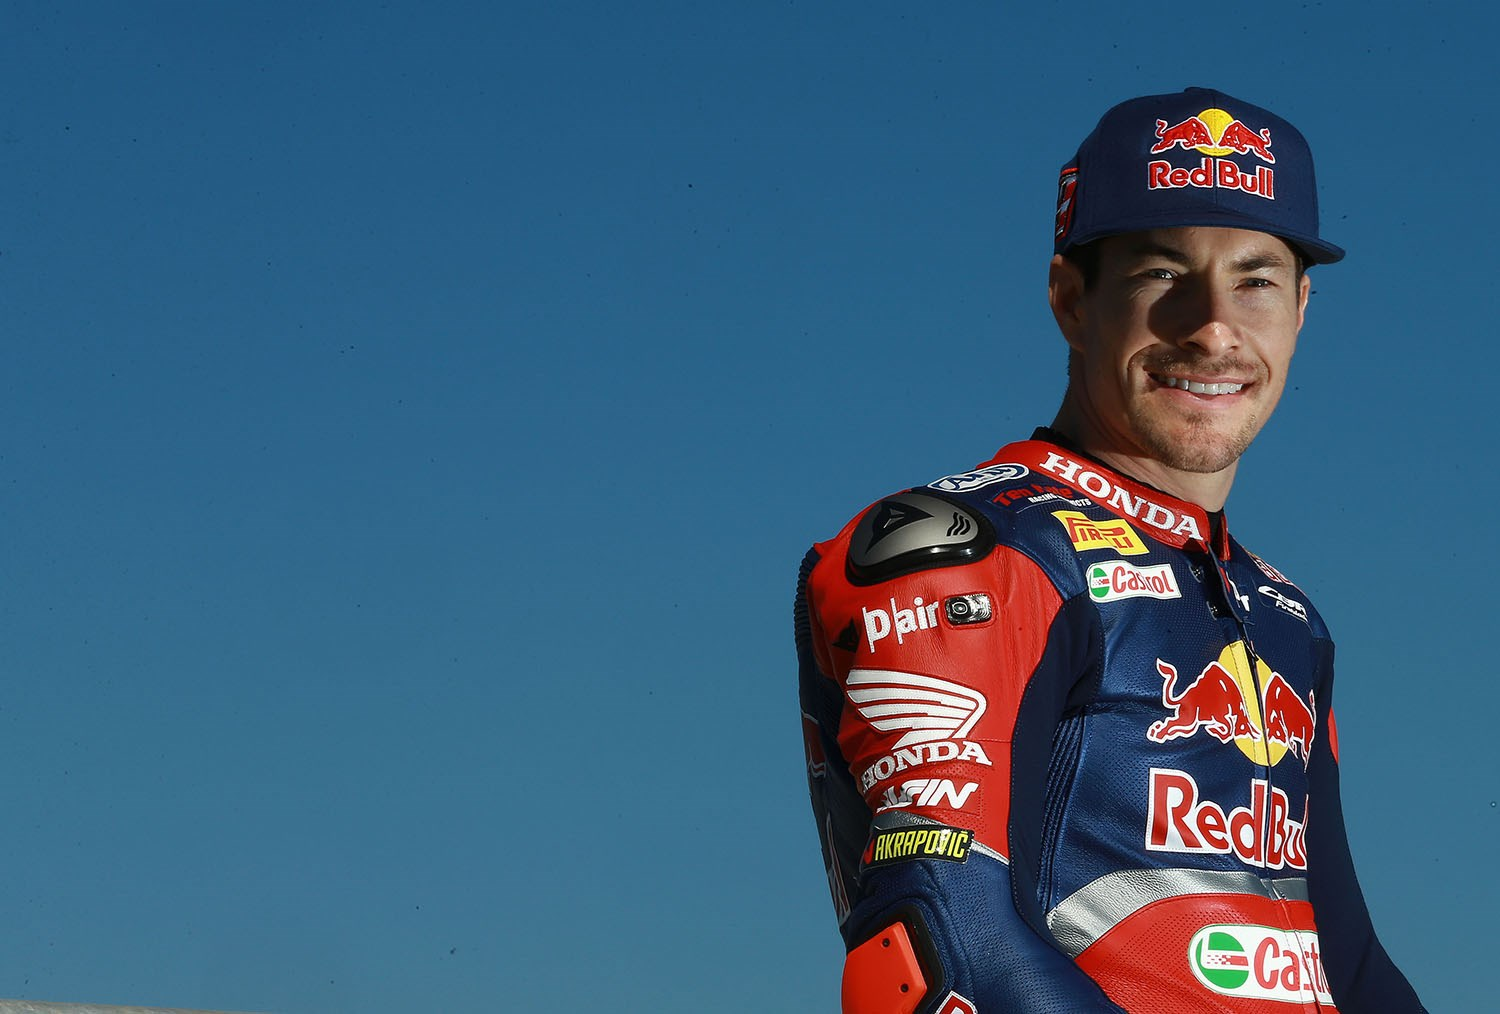 Driver who ran over Nicky Hayden won't get prison time